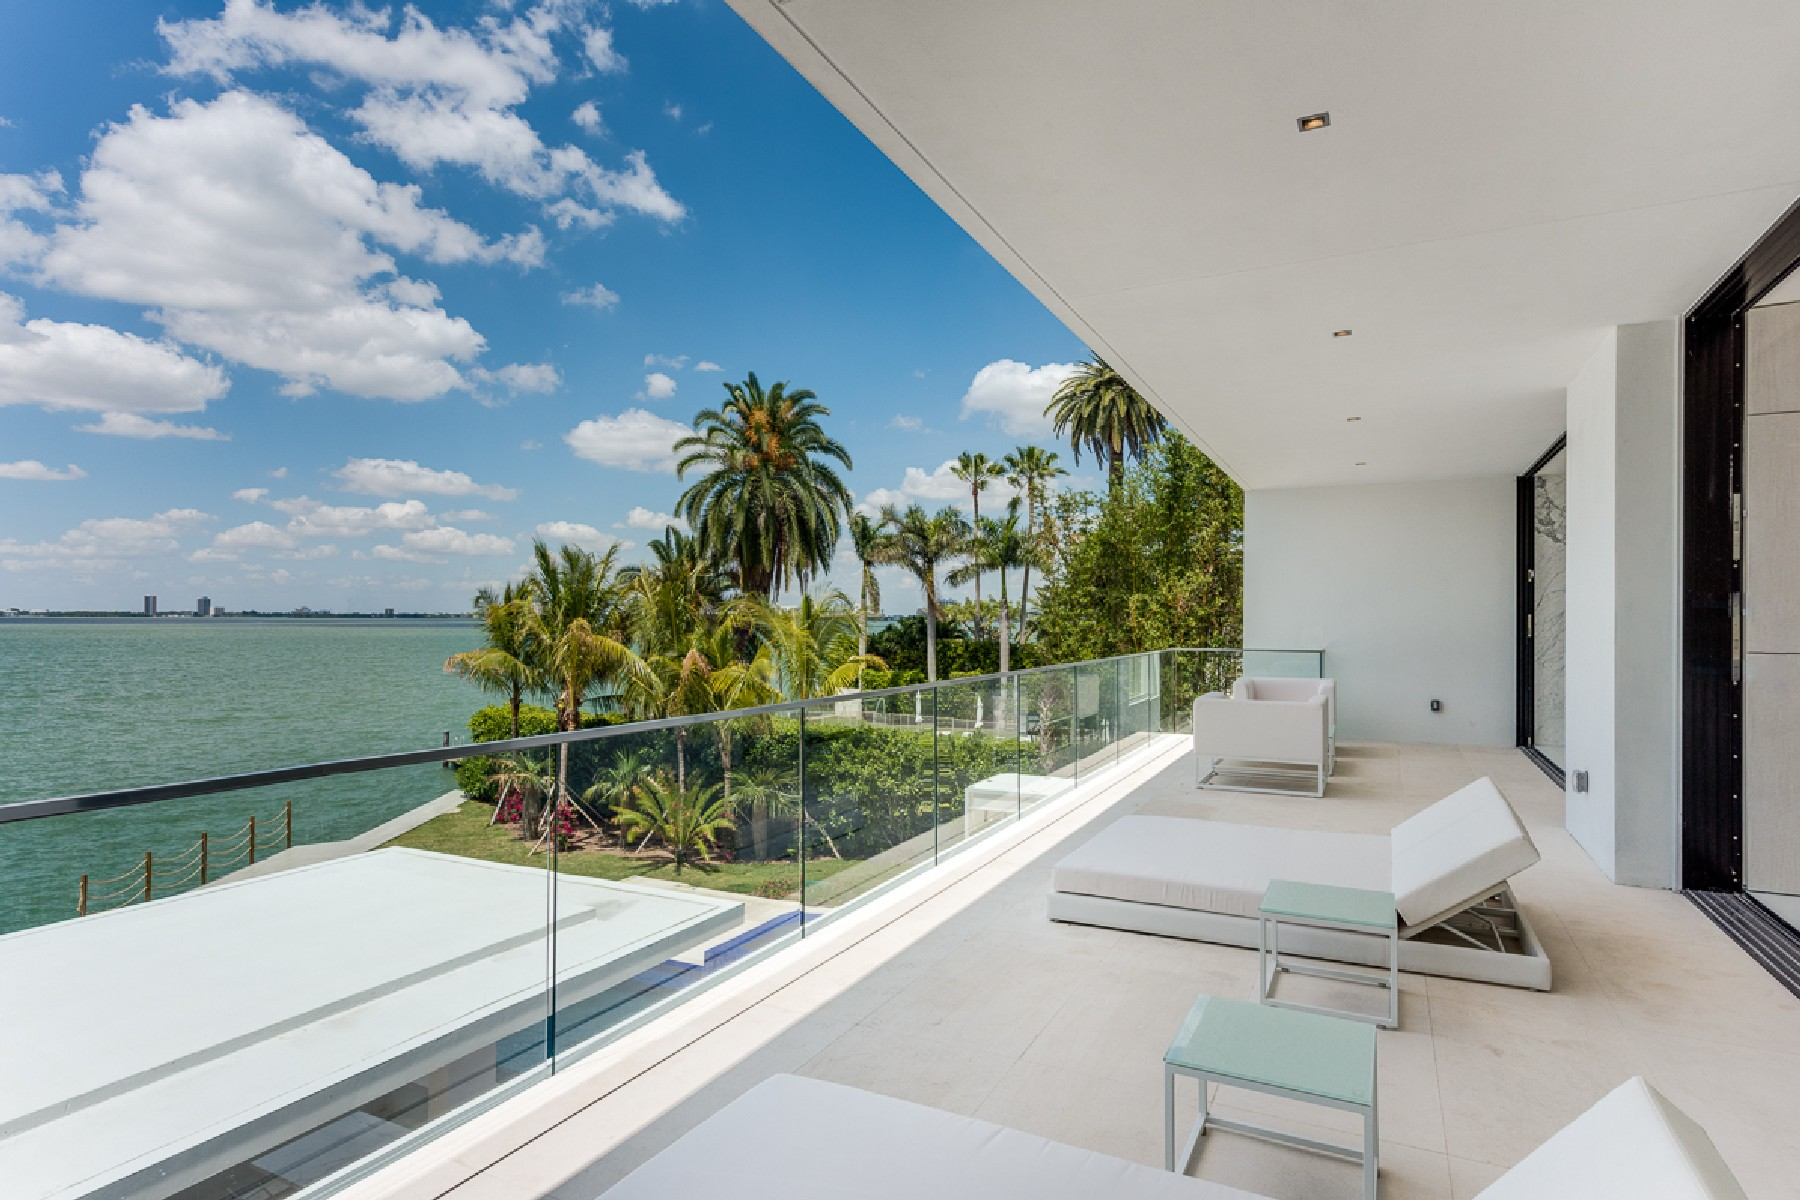 Additional photo for property listing at 5004 N Bay Rd  Miami Beach, Florida 33140 United States